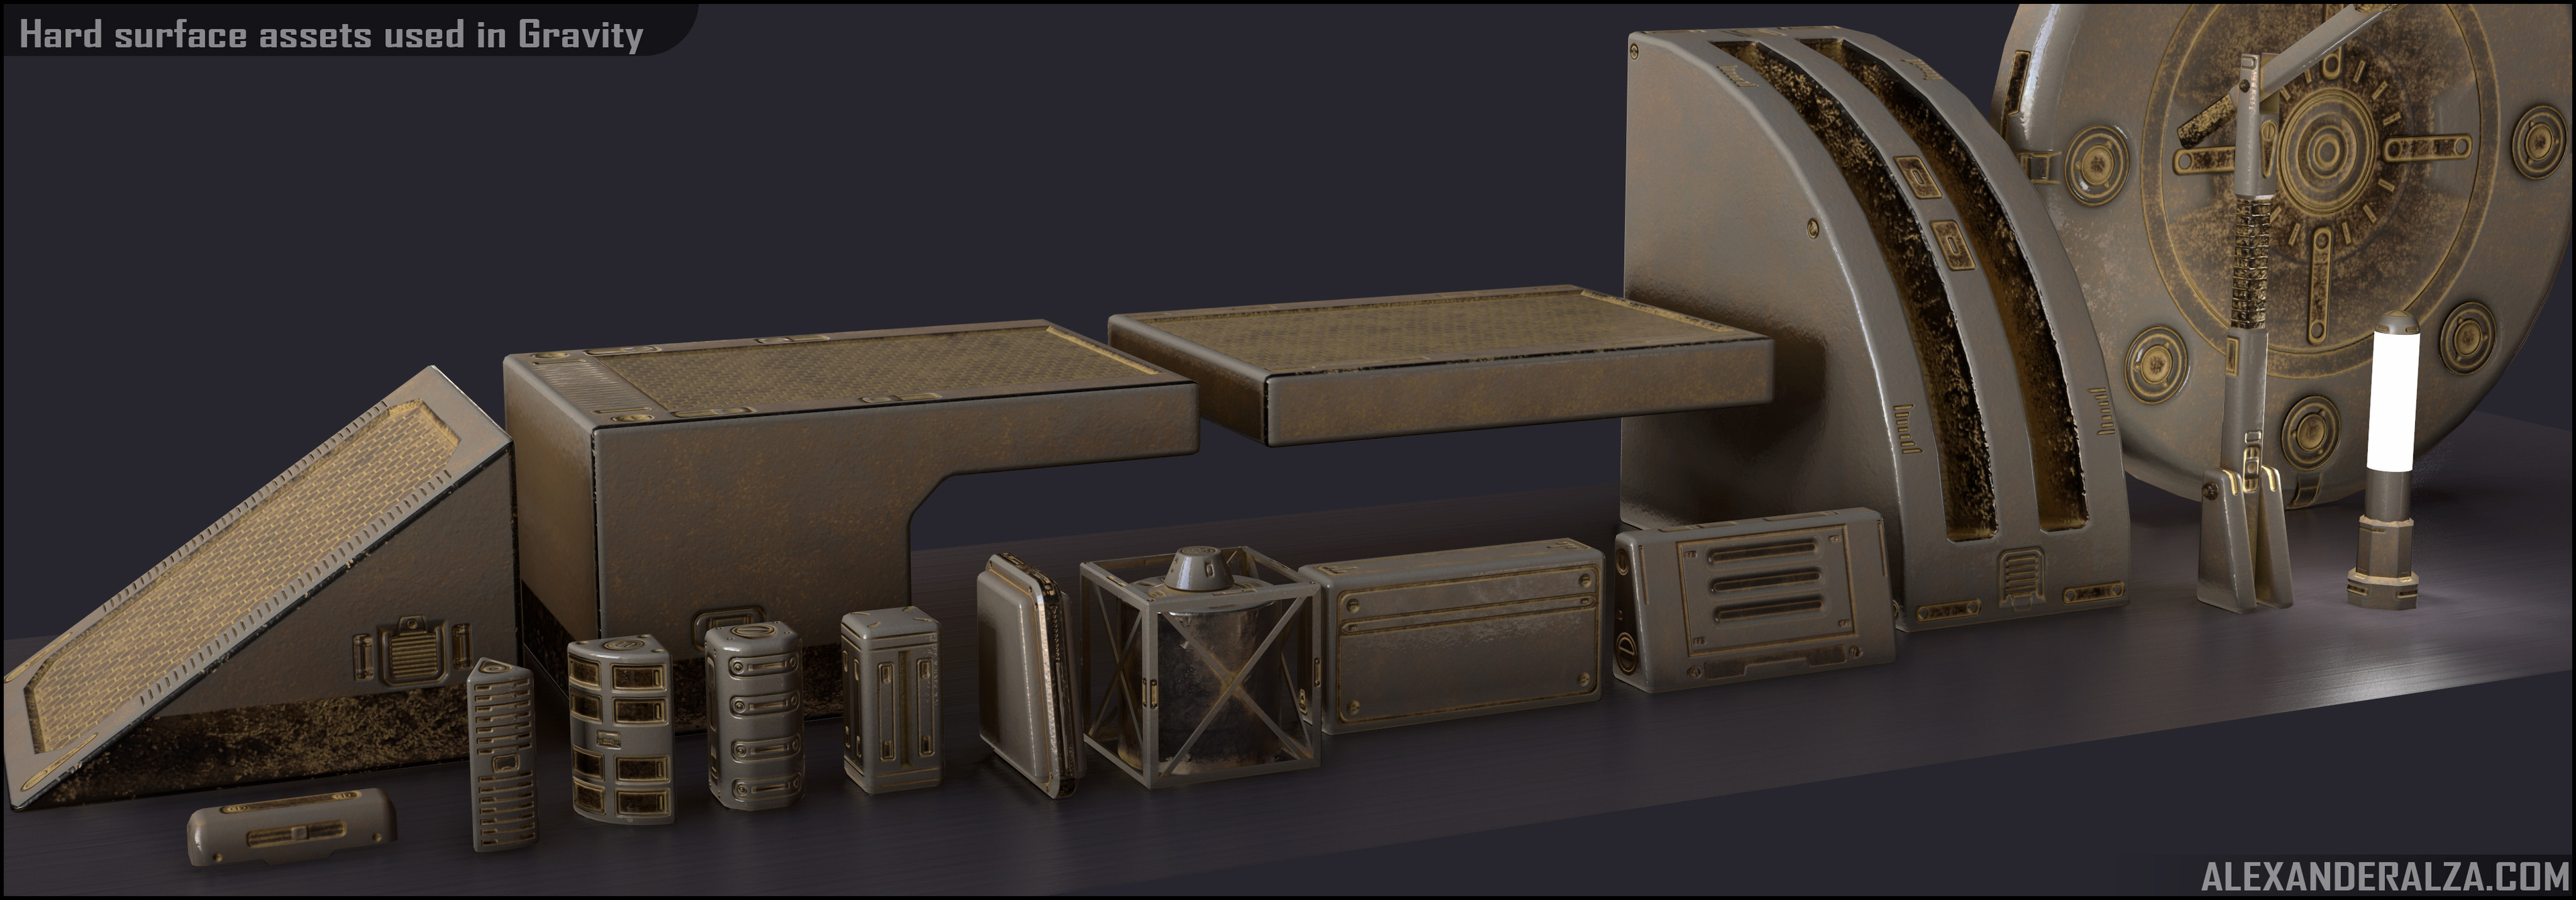 Gravity - Hard Surface Props